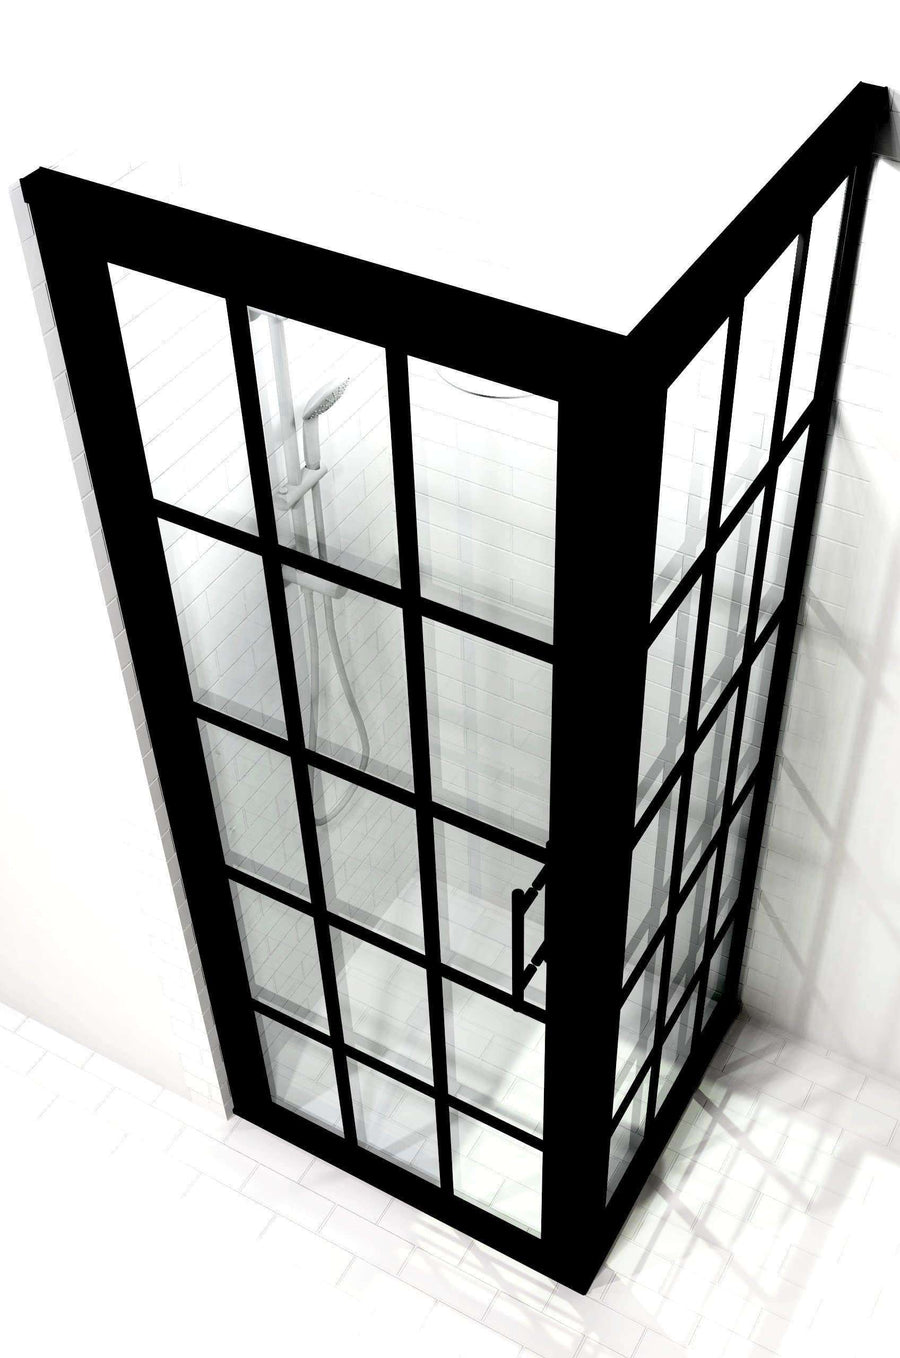 Divided Light Black Frame Corner 2- Panel Shower Door with Grids - Gridscape Series 1 GS1 by Coastal Shower Doors